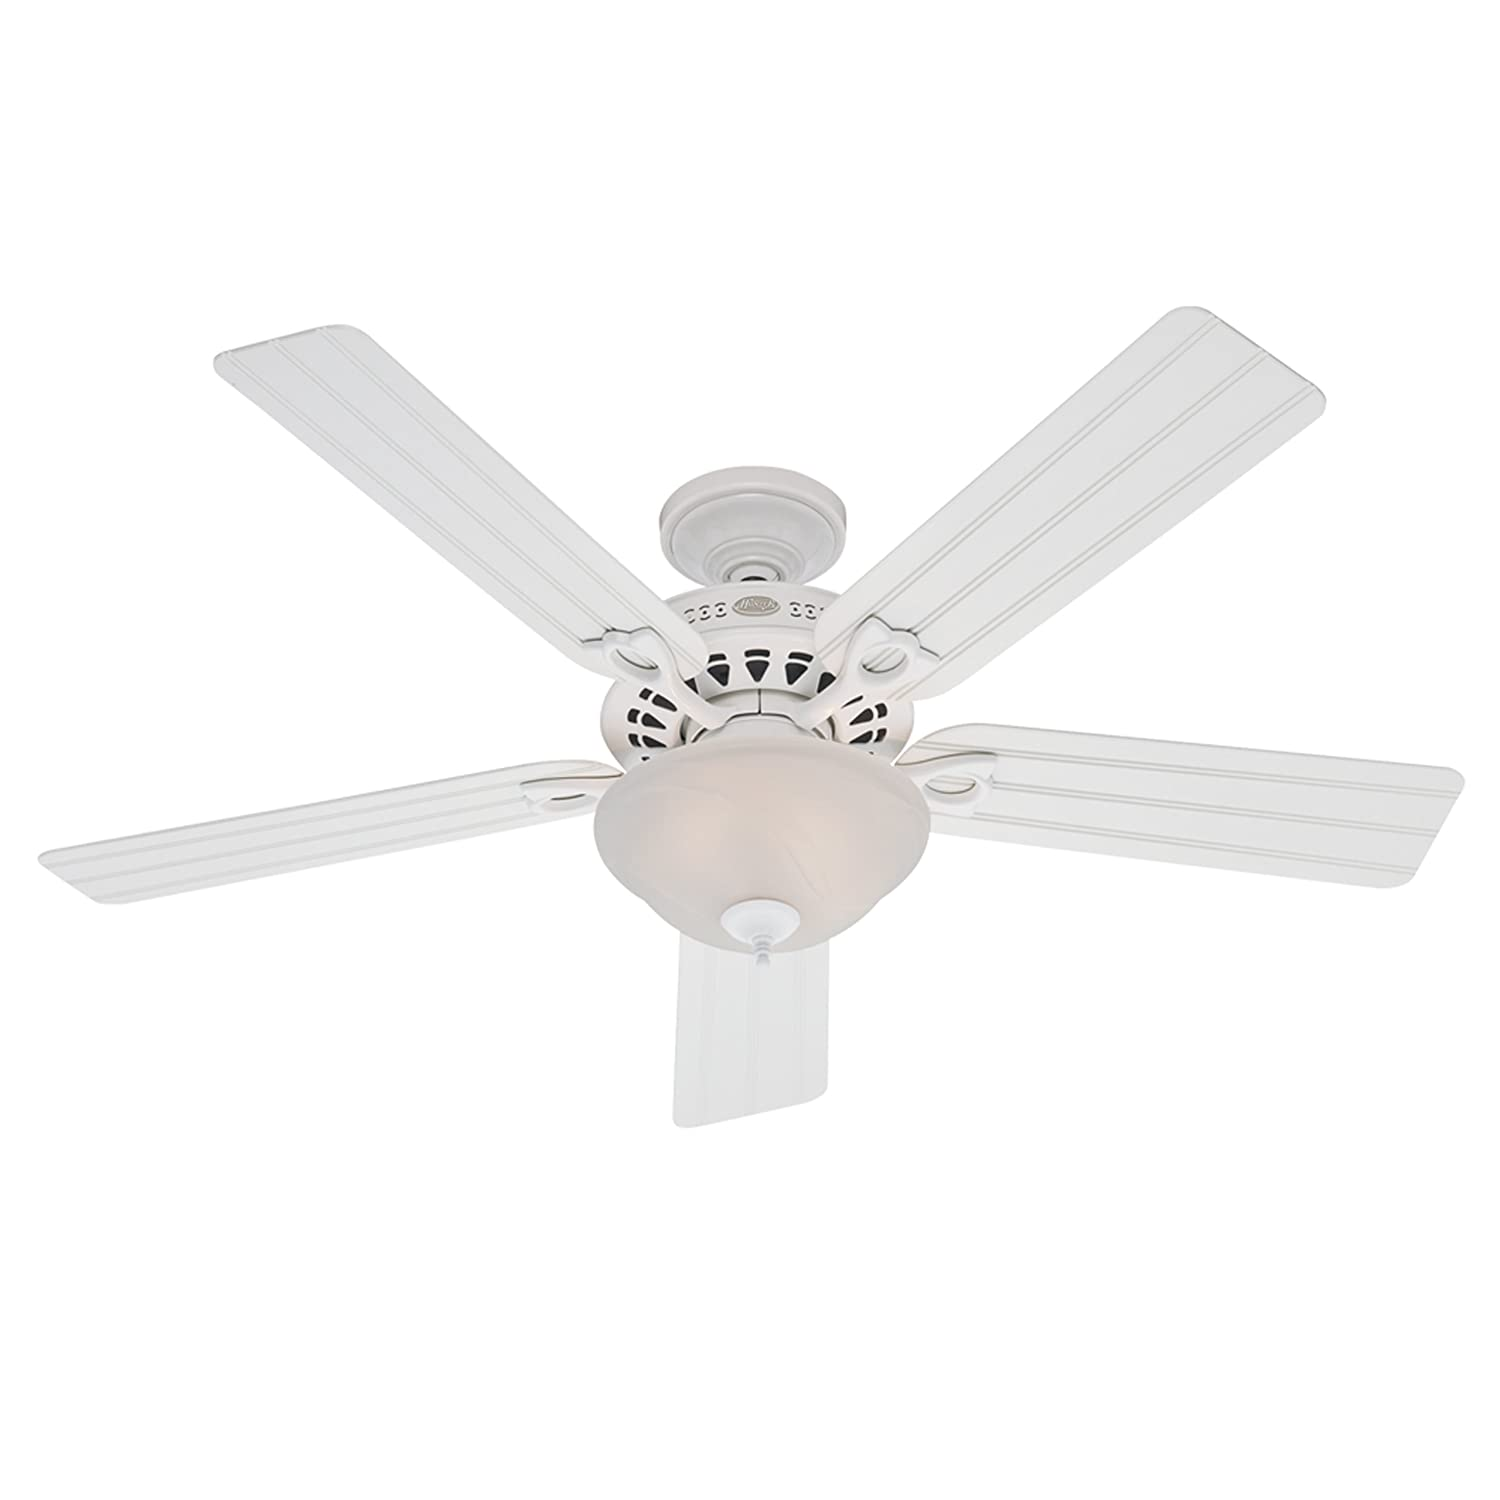 Hunter Beach ber 52 Inch 3 Speed Ceiling Fan with 5 White